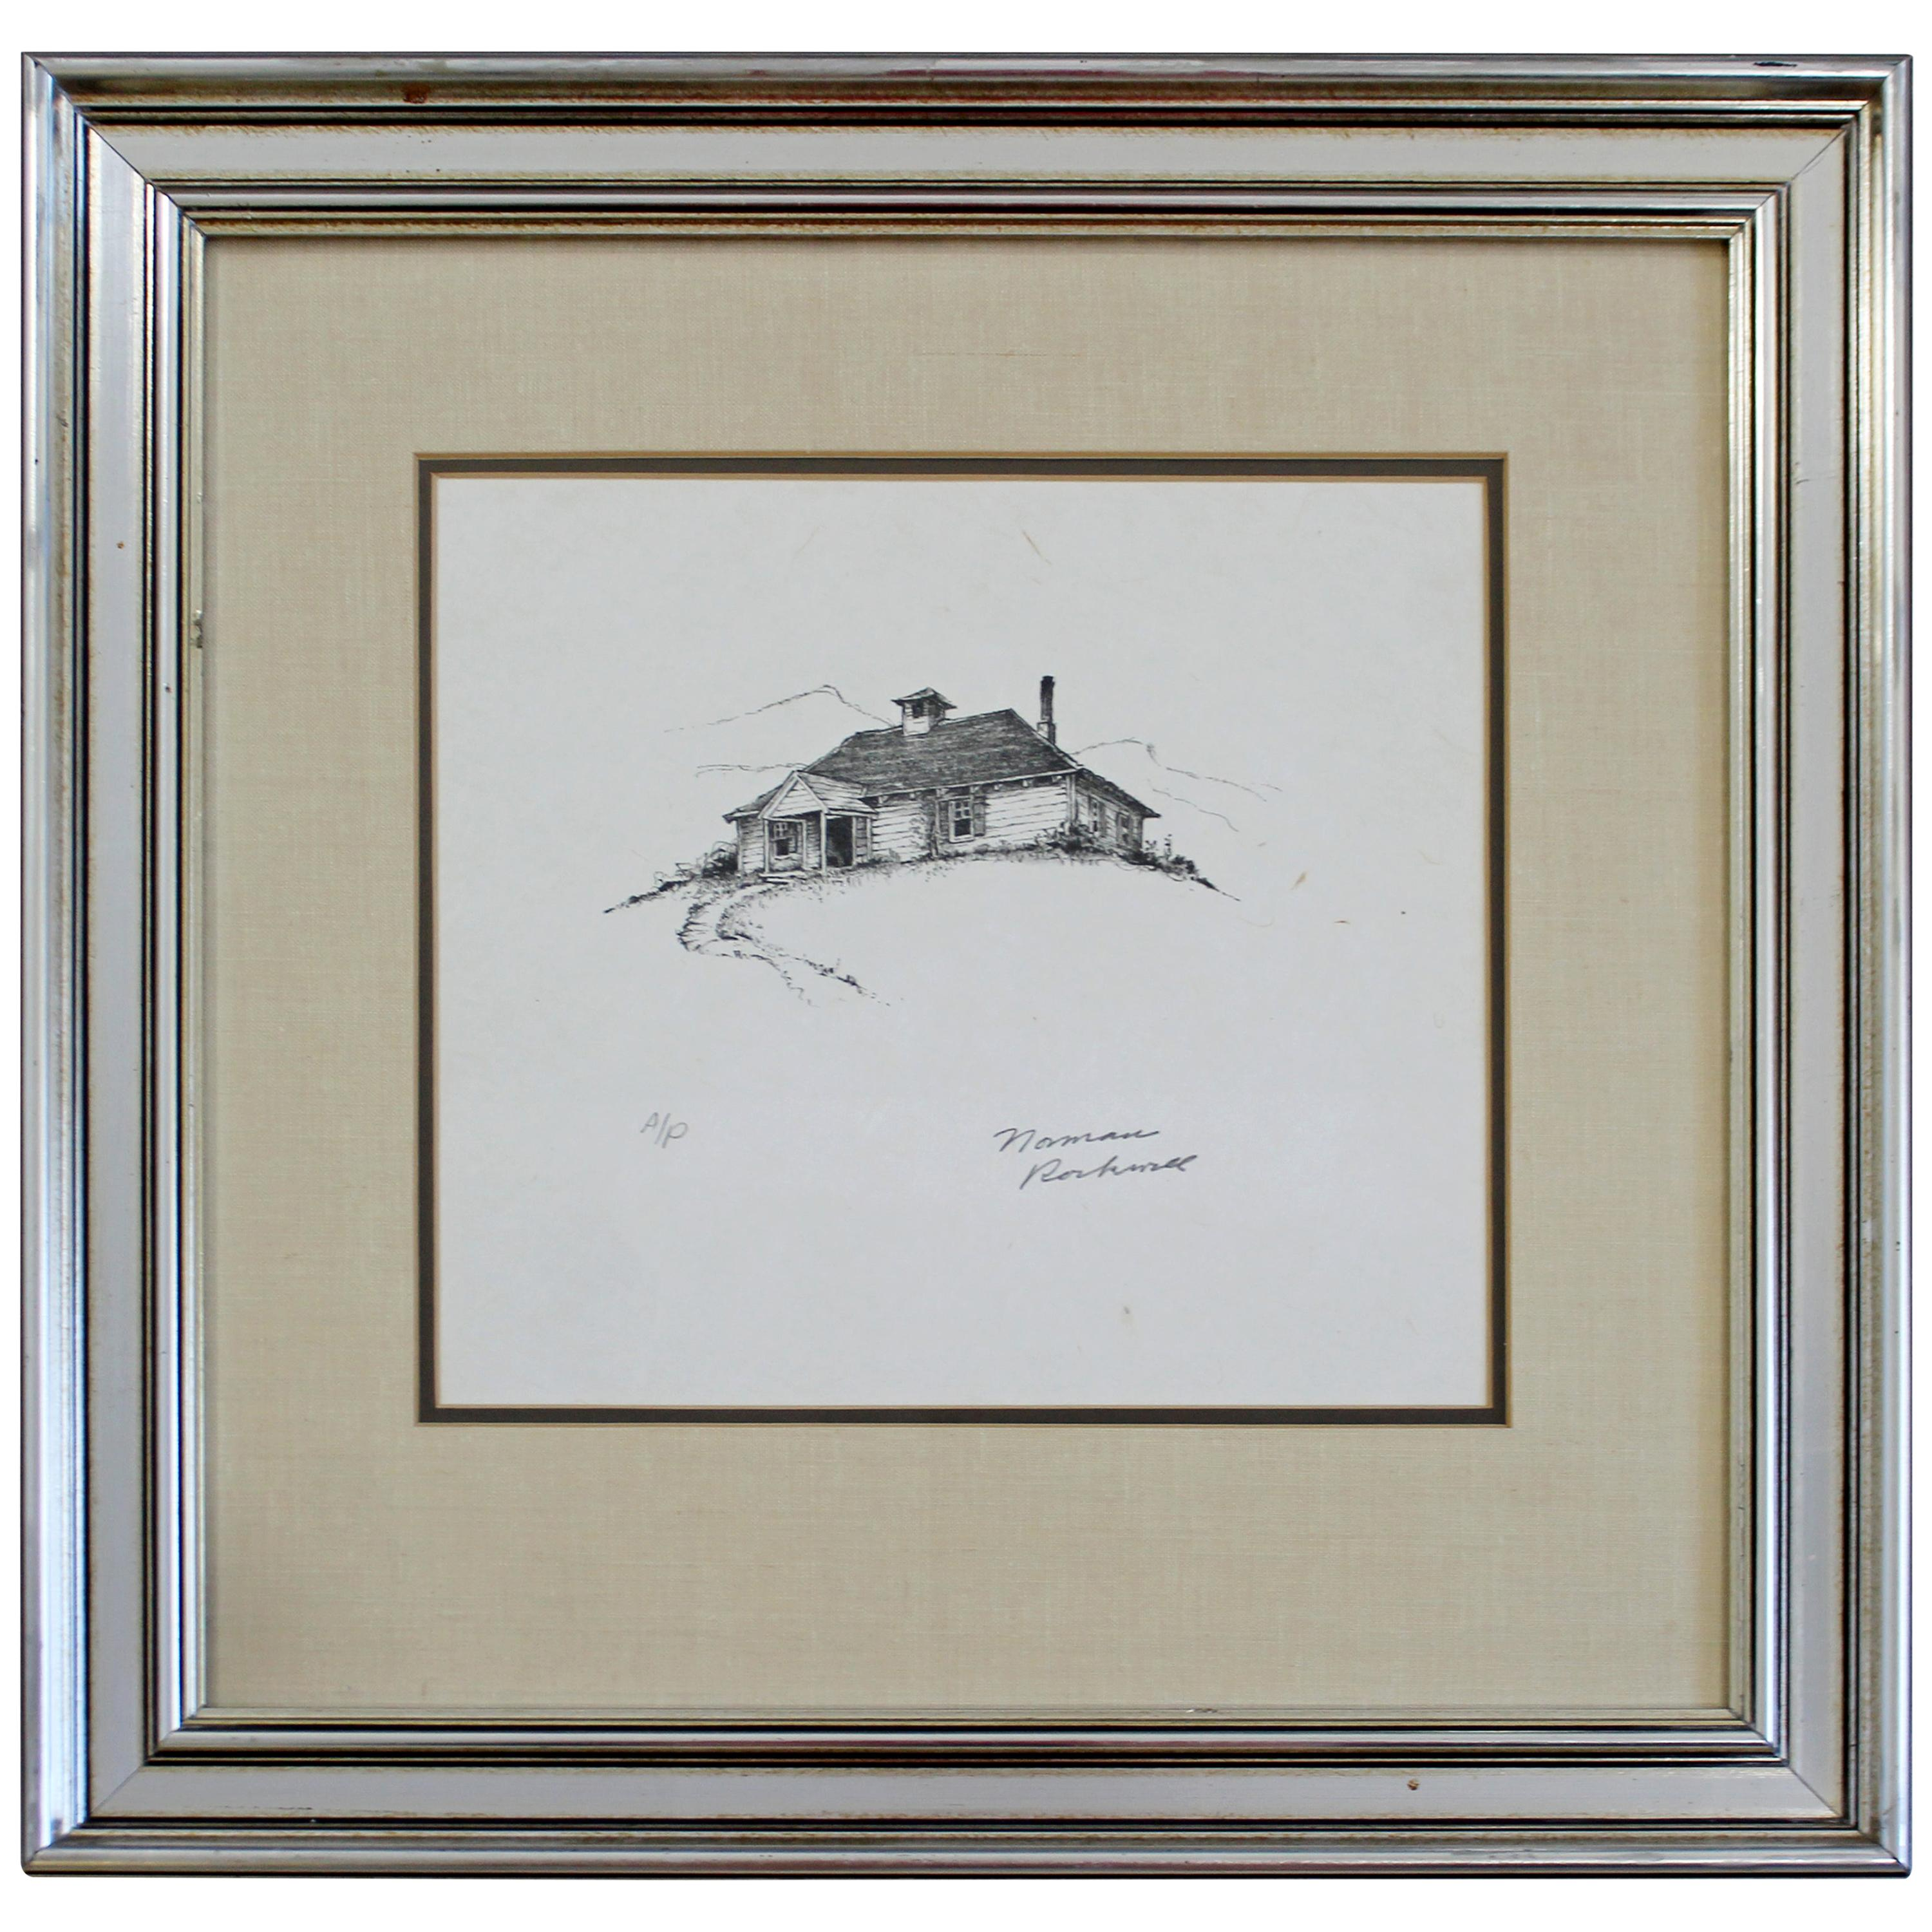 20th Century Framed Modern Illustration A.P. Litho Signed Norman Rockwell, 1947